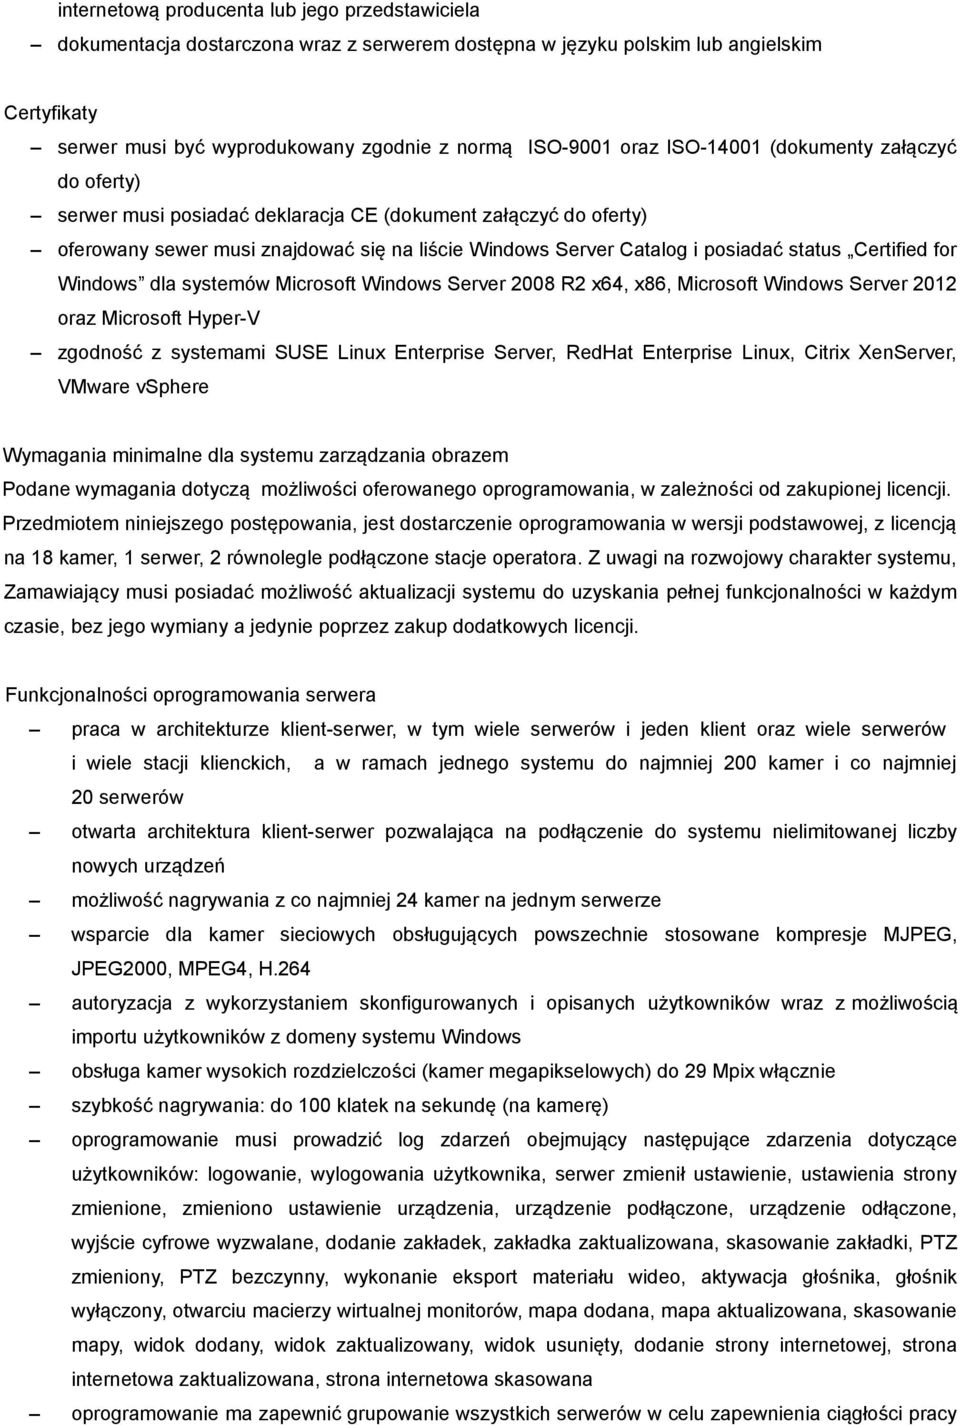 Certified for Windows dla systemów Microsoft Windows Server 2008 R2 x64, x86, Microsoft Windows Server 2012 oraz Microsoft Hyper-V zgodność z systemami SUSE Linux Enterprise Server, RedHat Enterprise